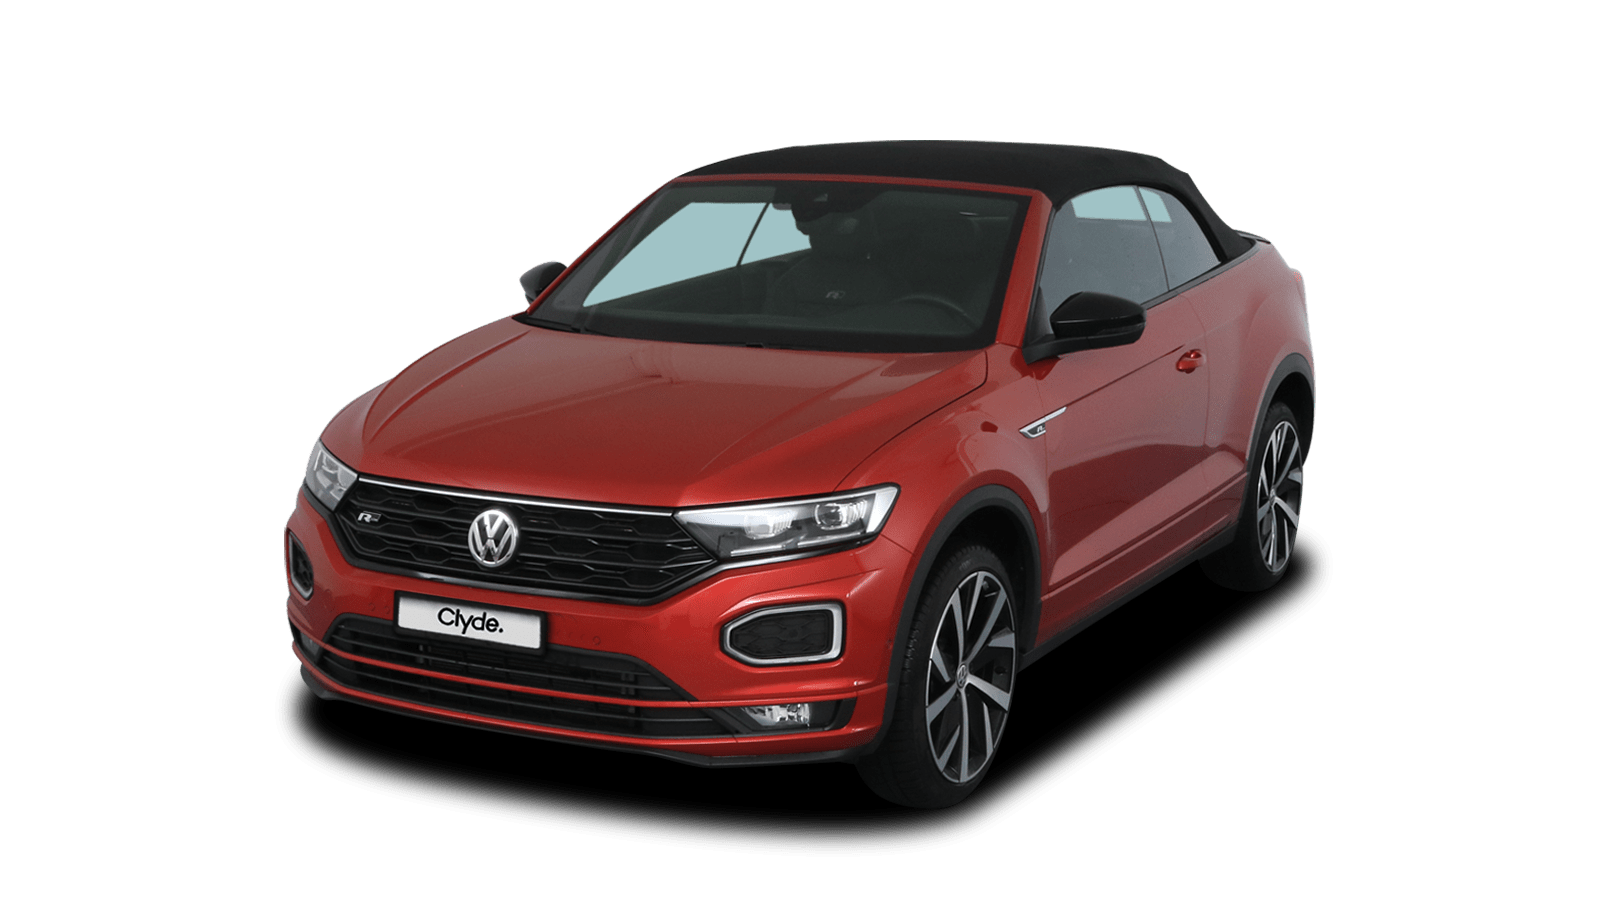 VW T-Roc Cabriolet Red front - Clyde car subscription